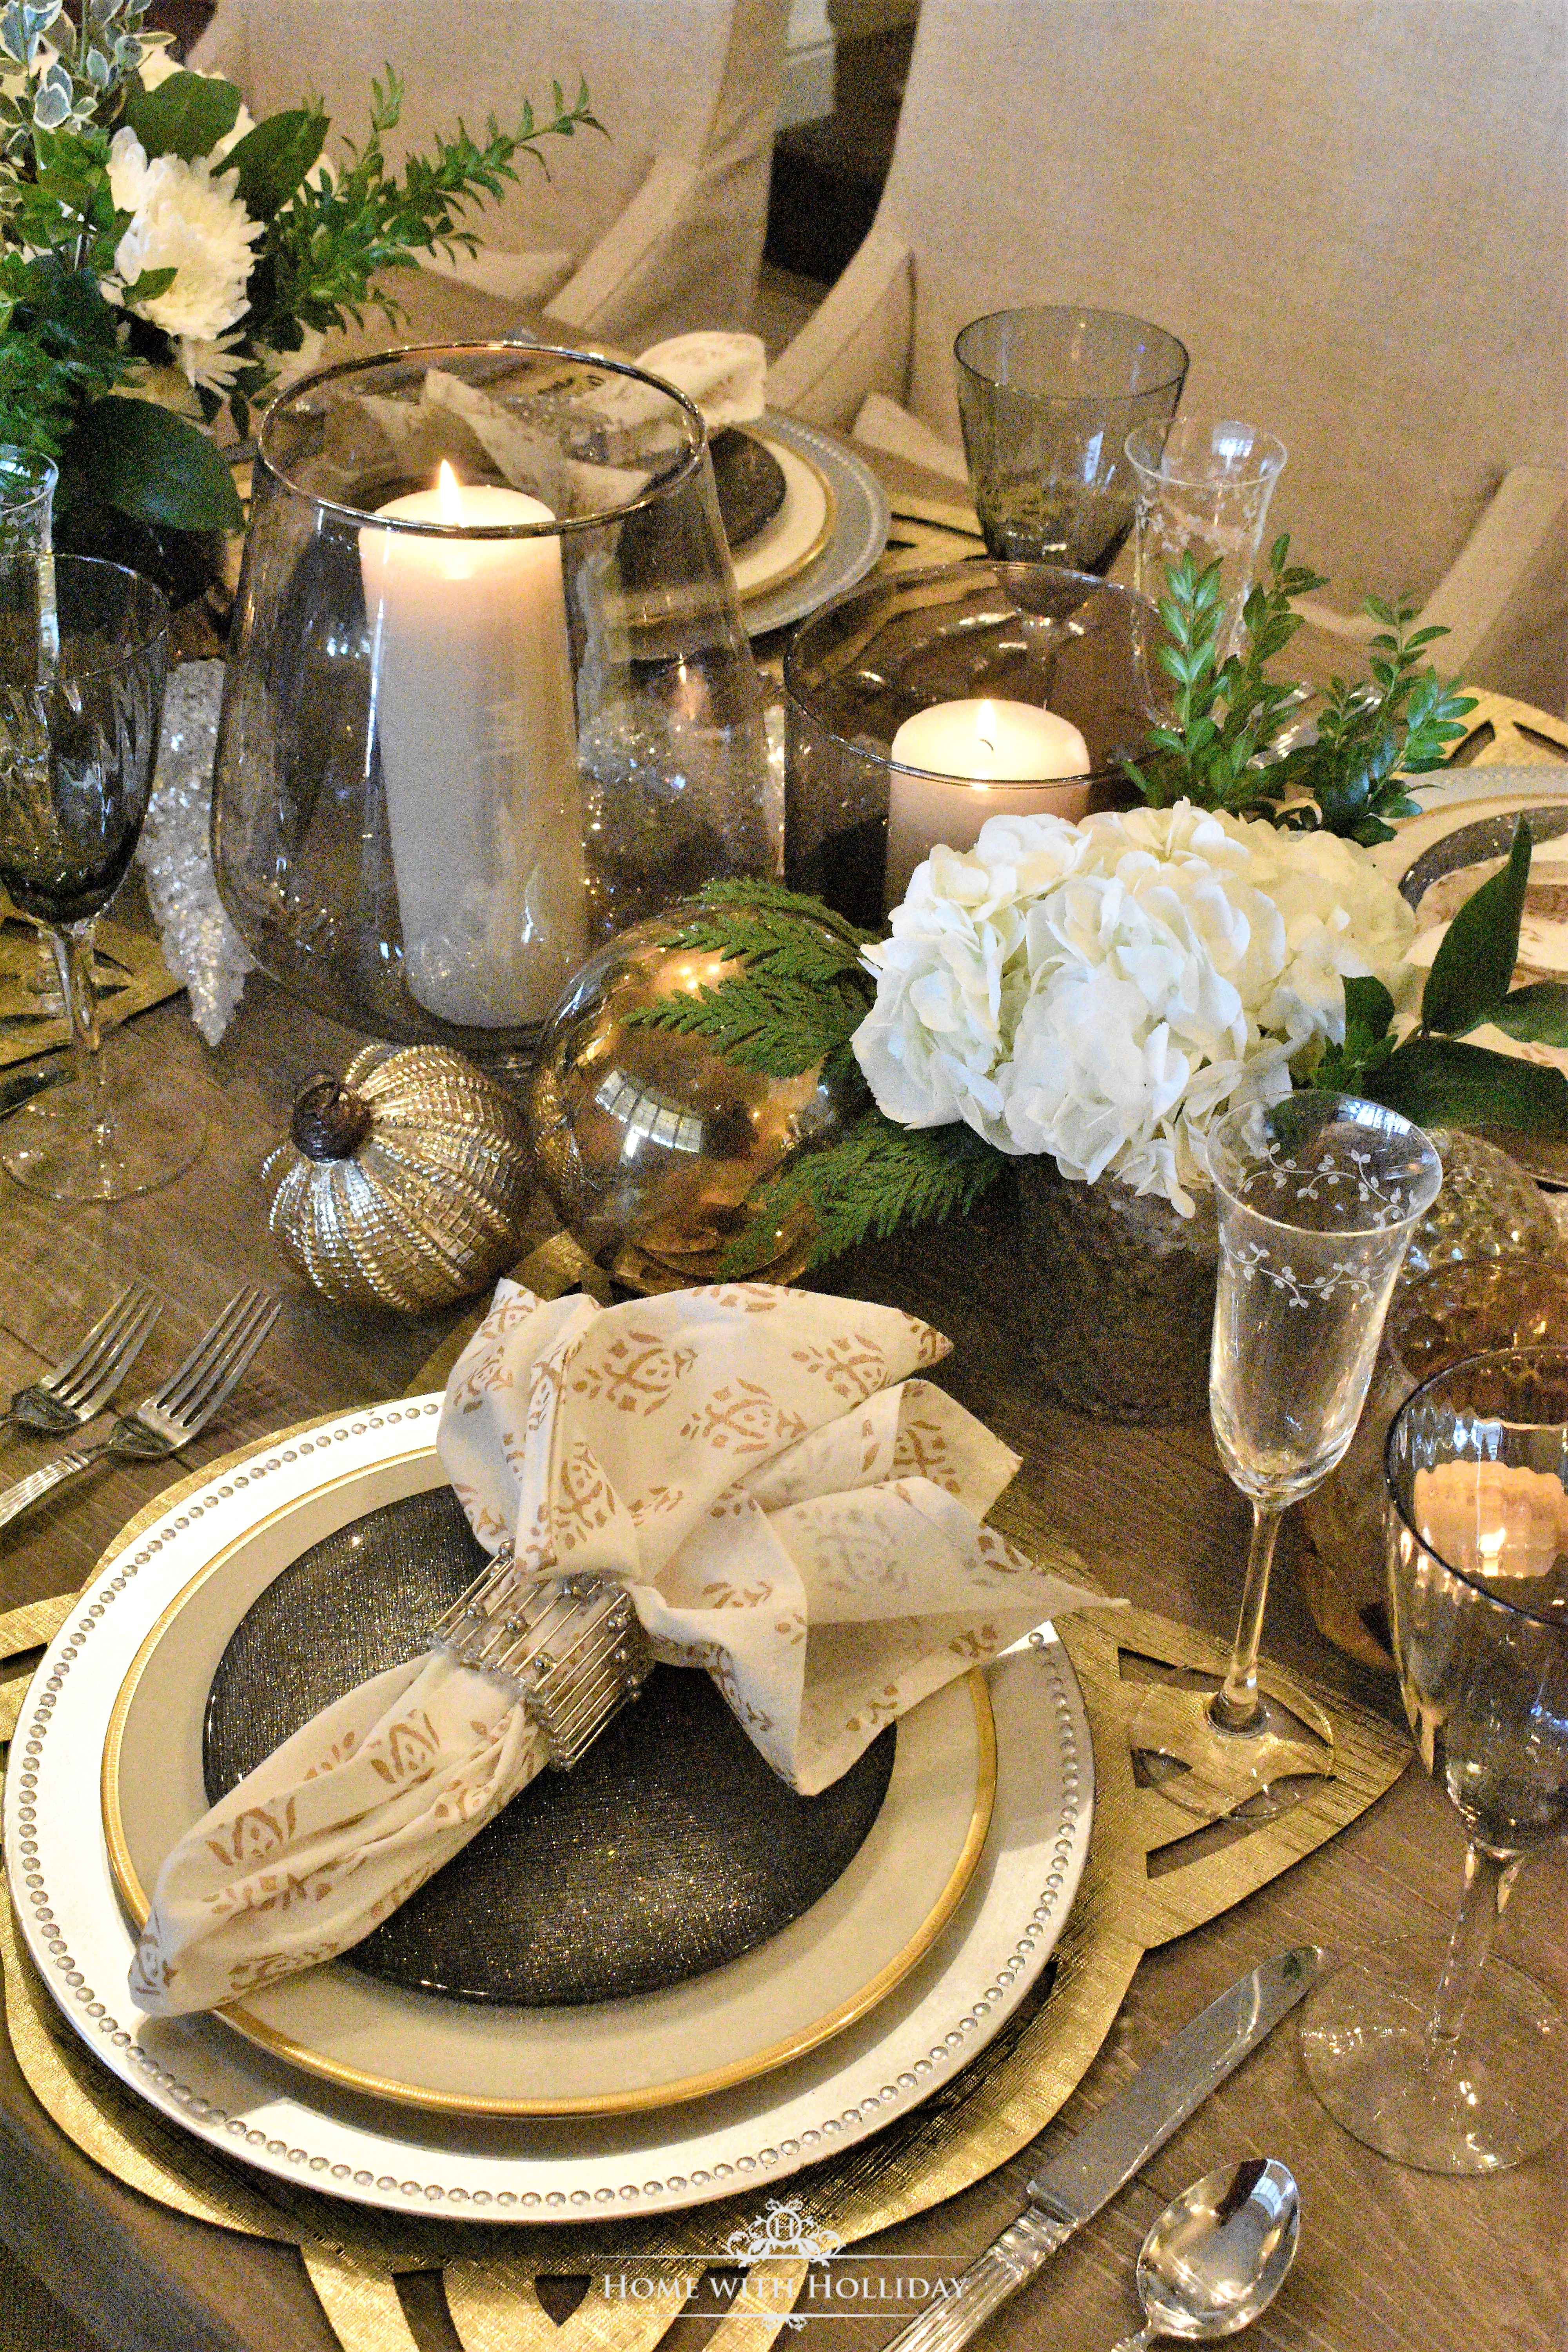 Gold and Silver Place Setting for New Year's or Christmas - Home with Holliday